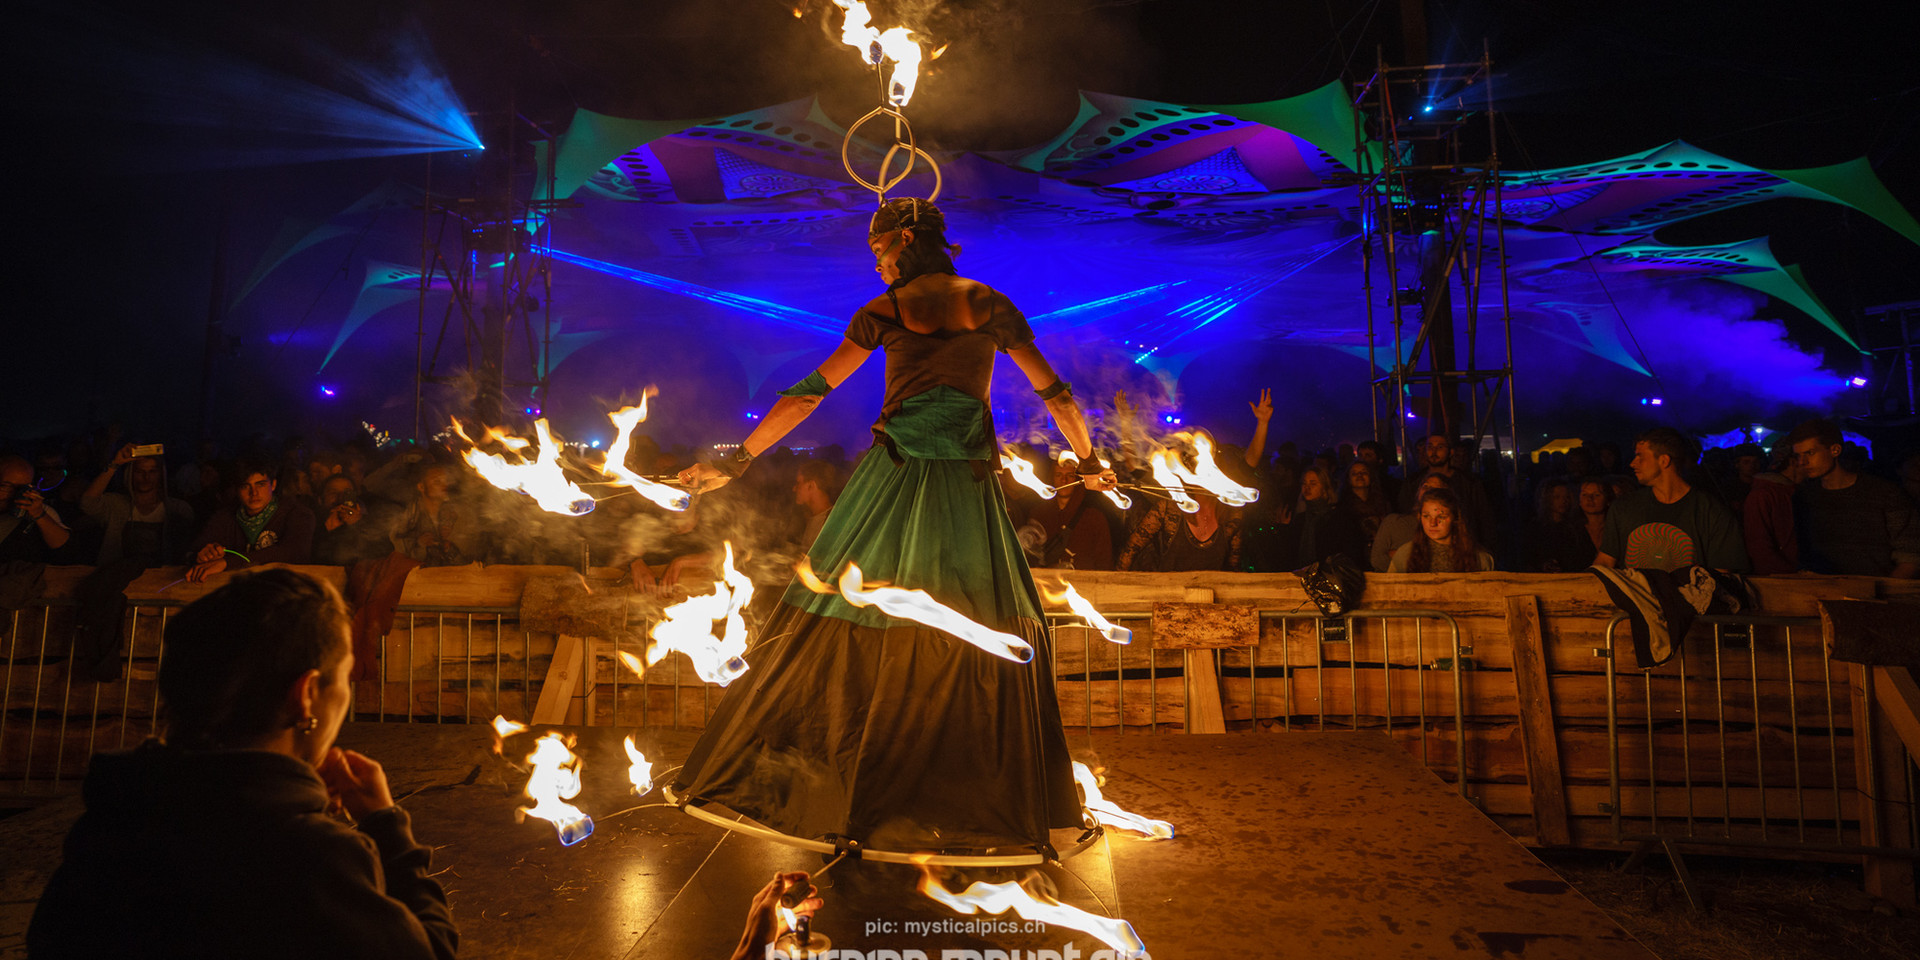 Fire performers, jugglers, painters and freaks with all kinds of talents present their amazing skills!